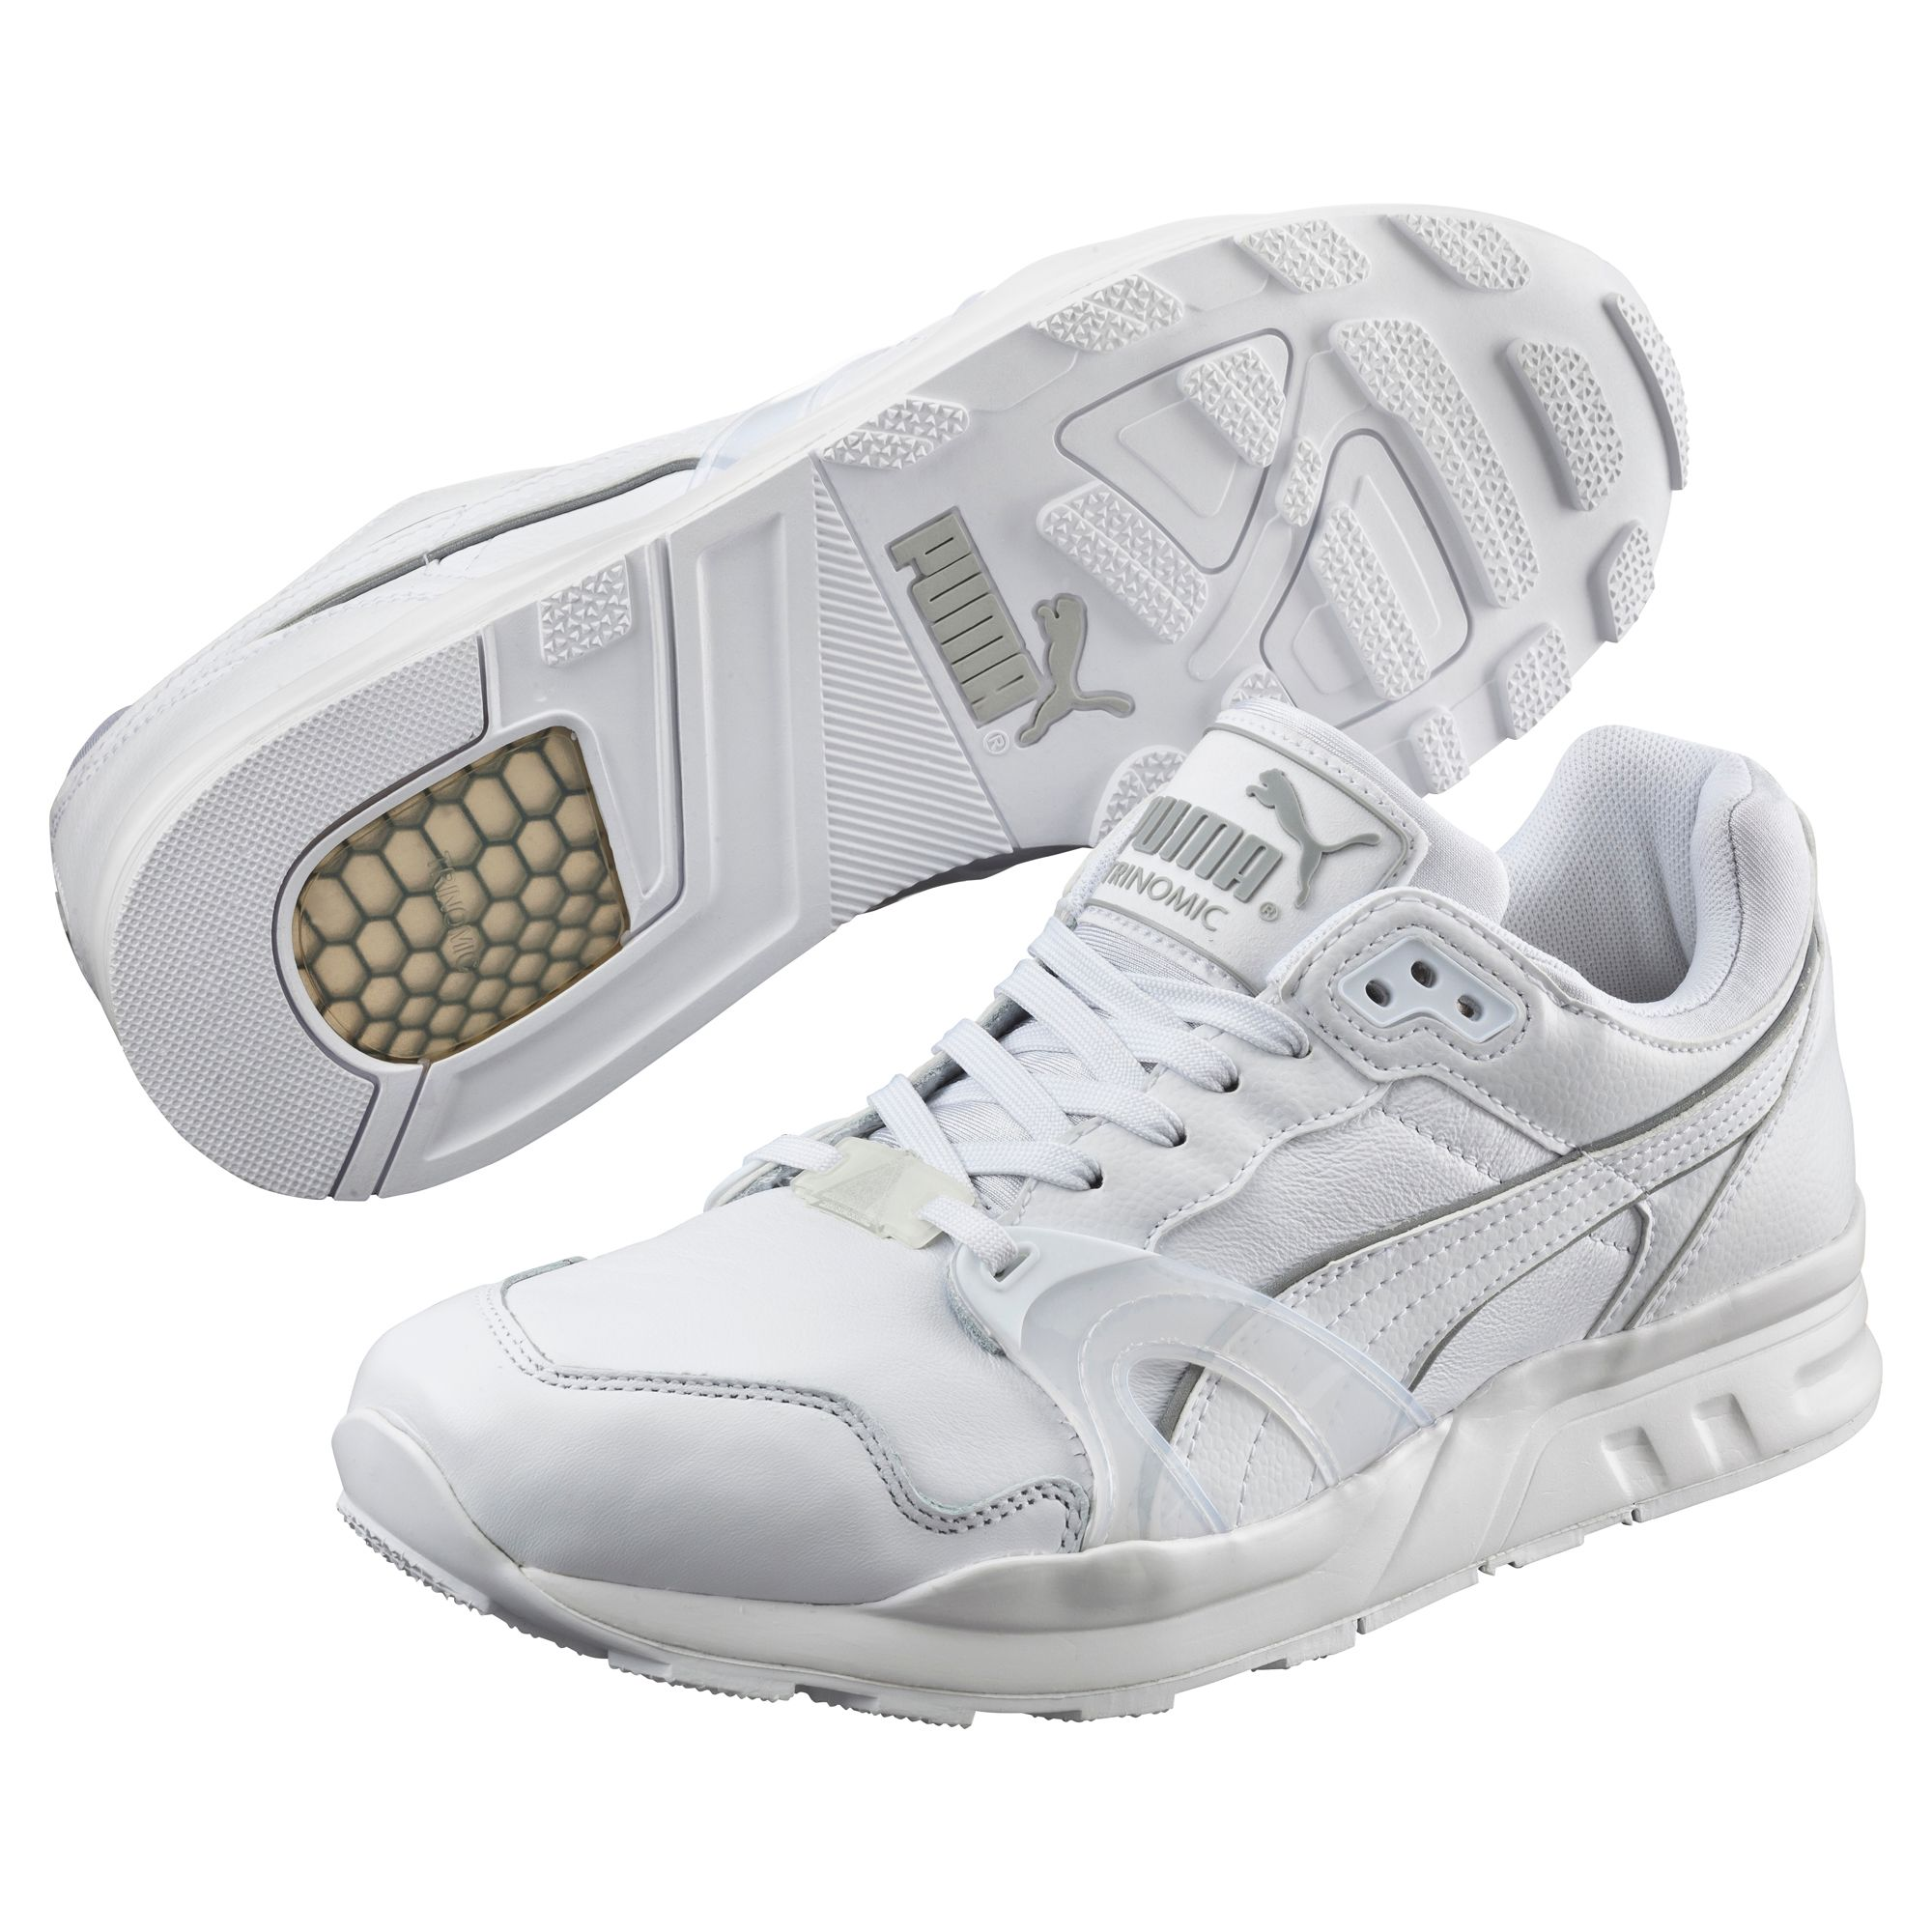 60404fcc5ace PUMA Trinomic XT-1 Reflectriple Trainers Footwear Sneakers Sport ...